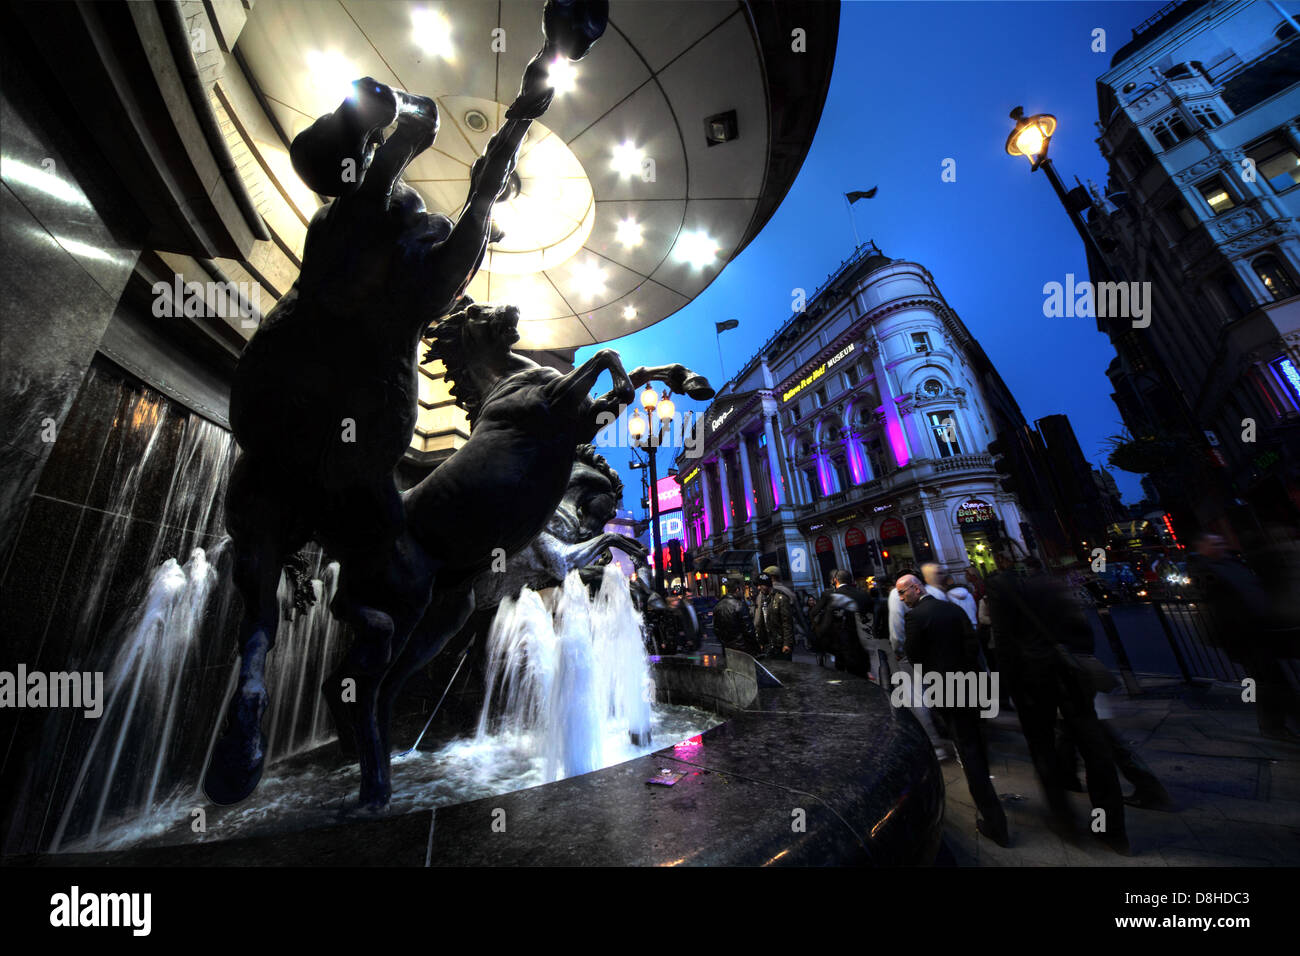 The Horses of Helios by Rudy Weller Haymarket near Piccadilly Circus London at dusk - Stock Image